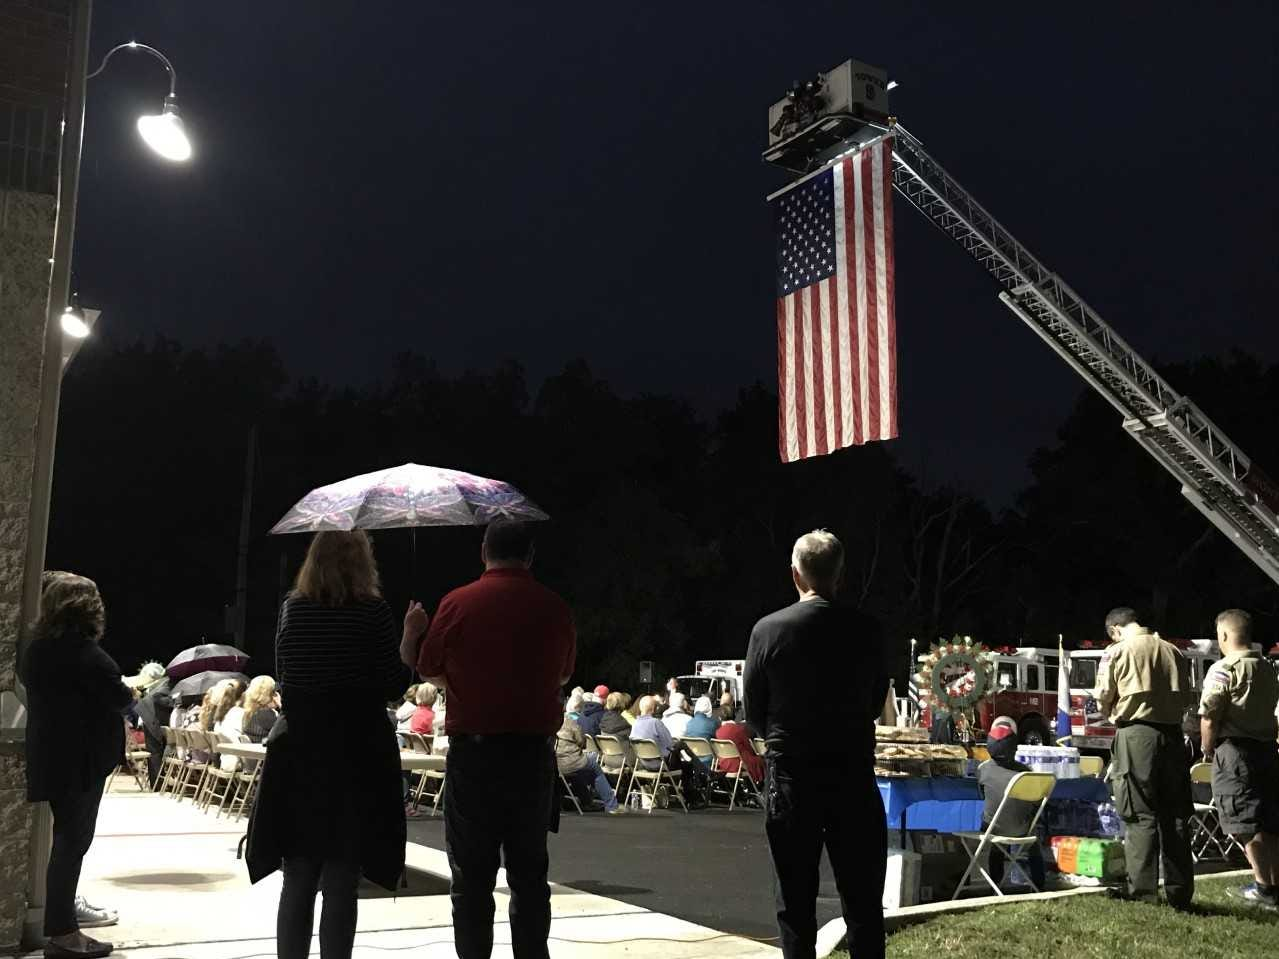 People watch as an FBI special agent, state politicians, and a 9/11 first responder, among others speak during a 9/11 ceremony at the Montvale Fire House on Sept. 11, 2018.